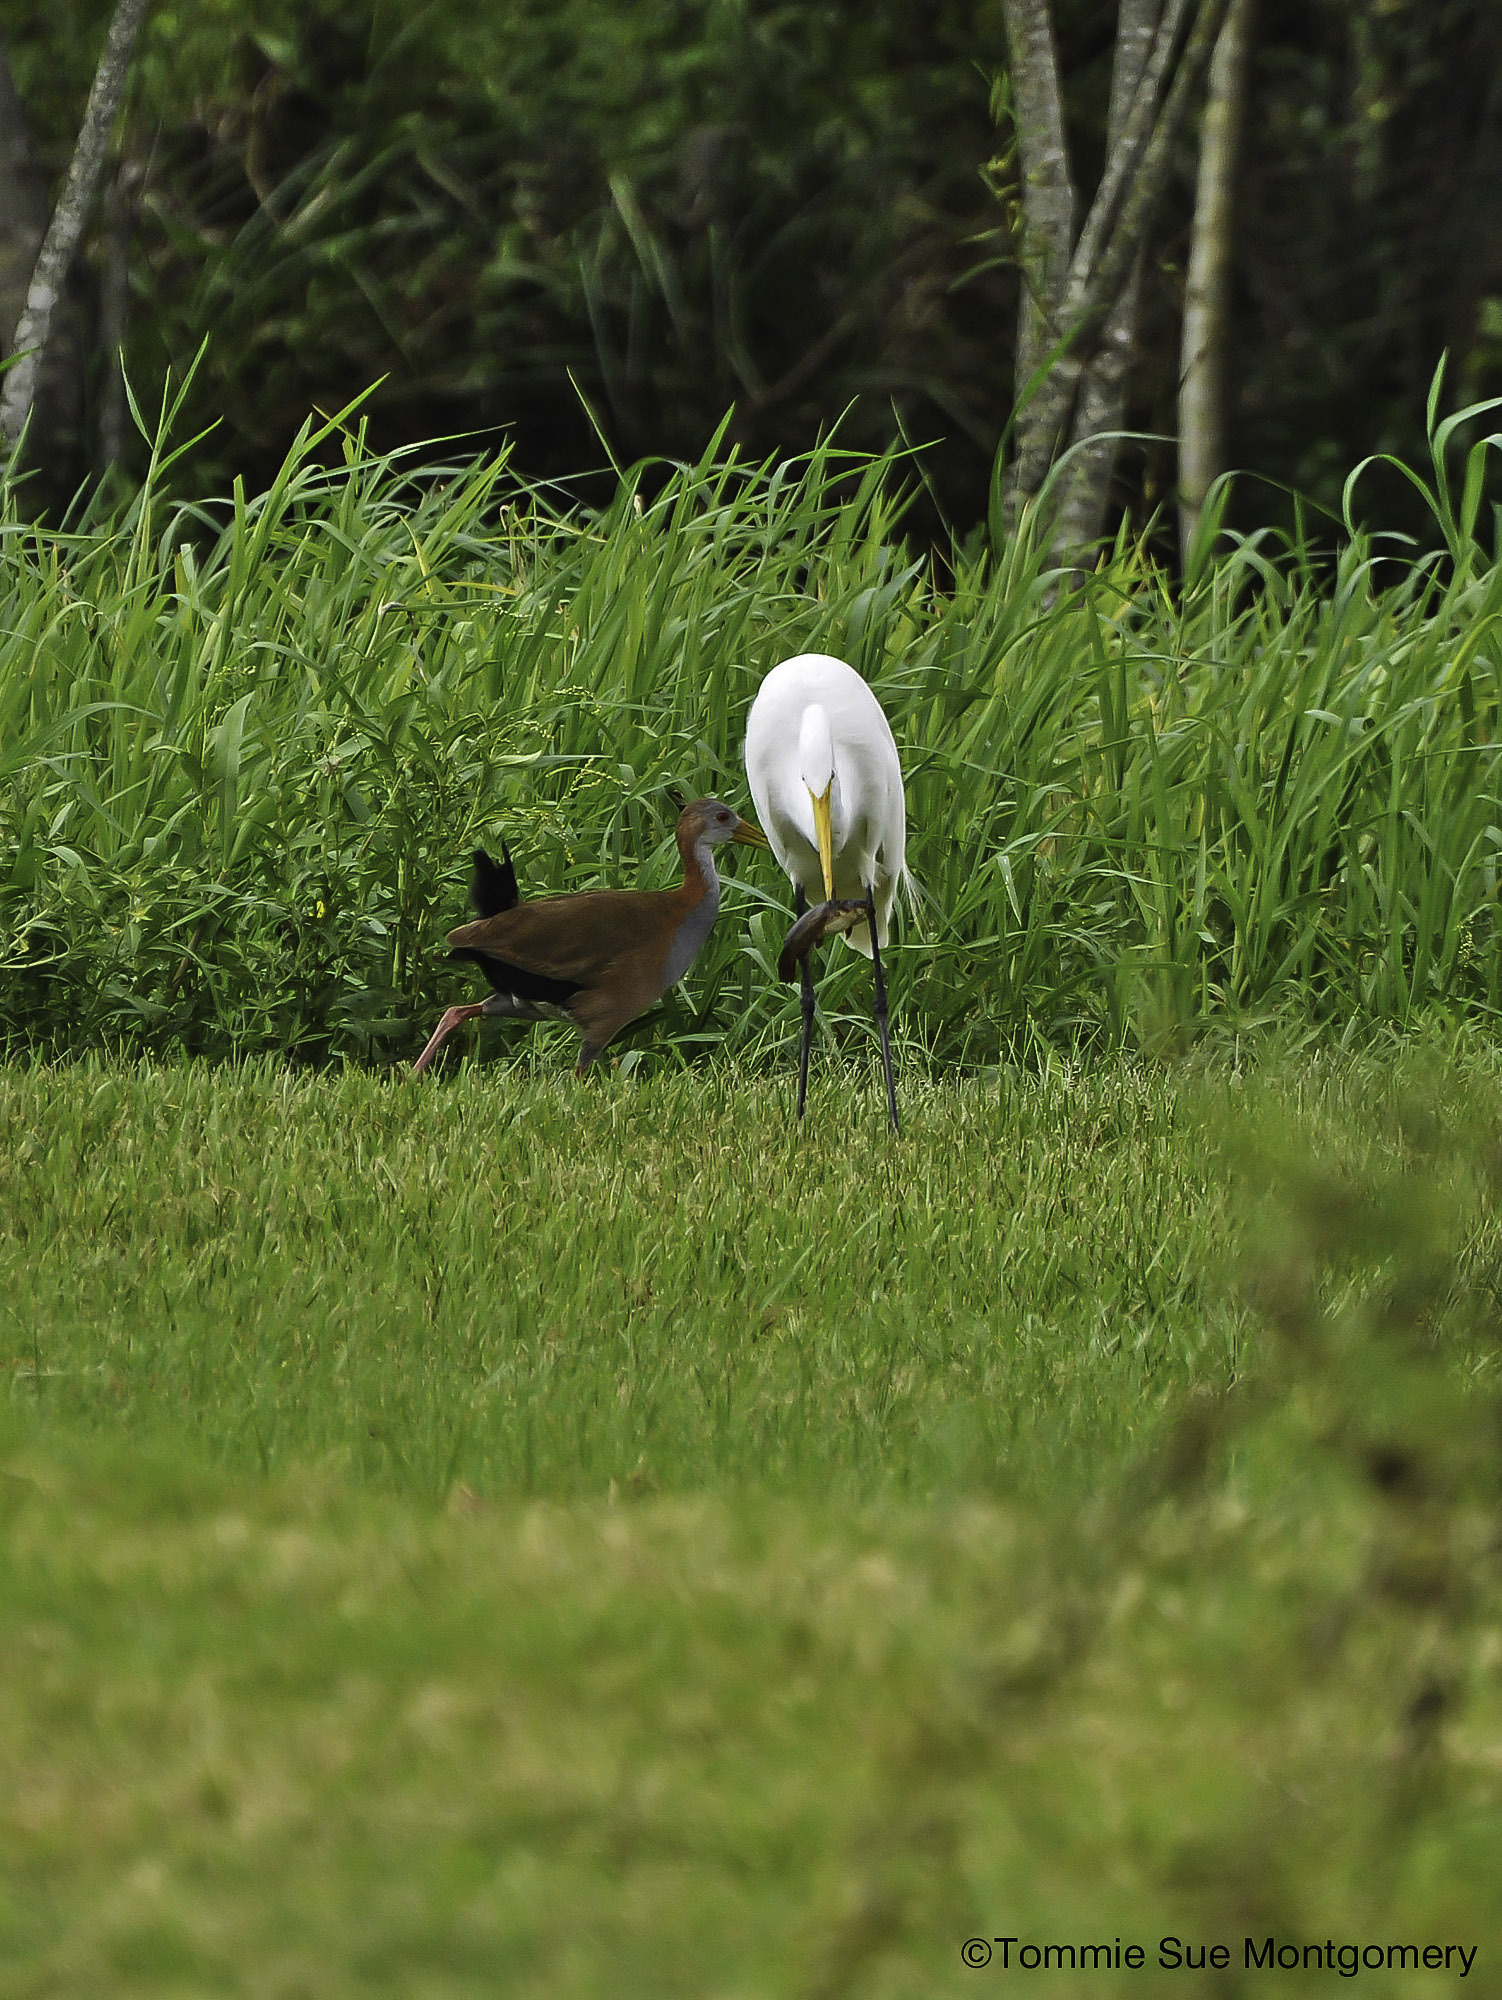 Great white egret with food